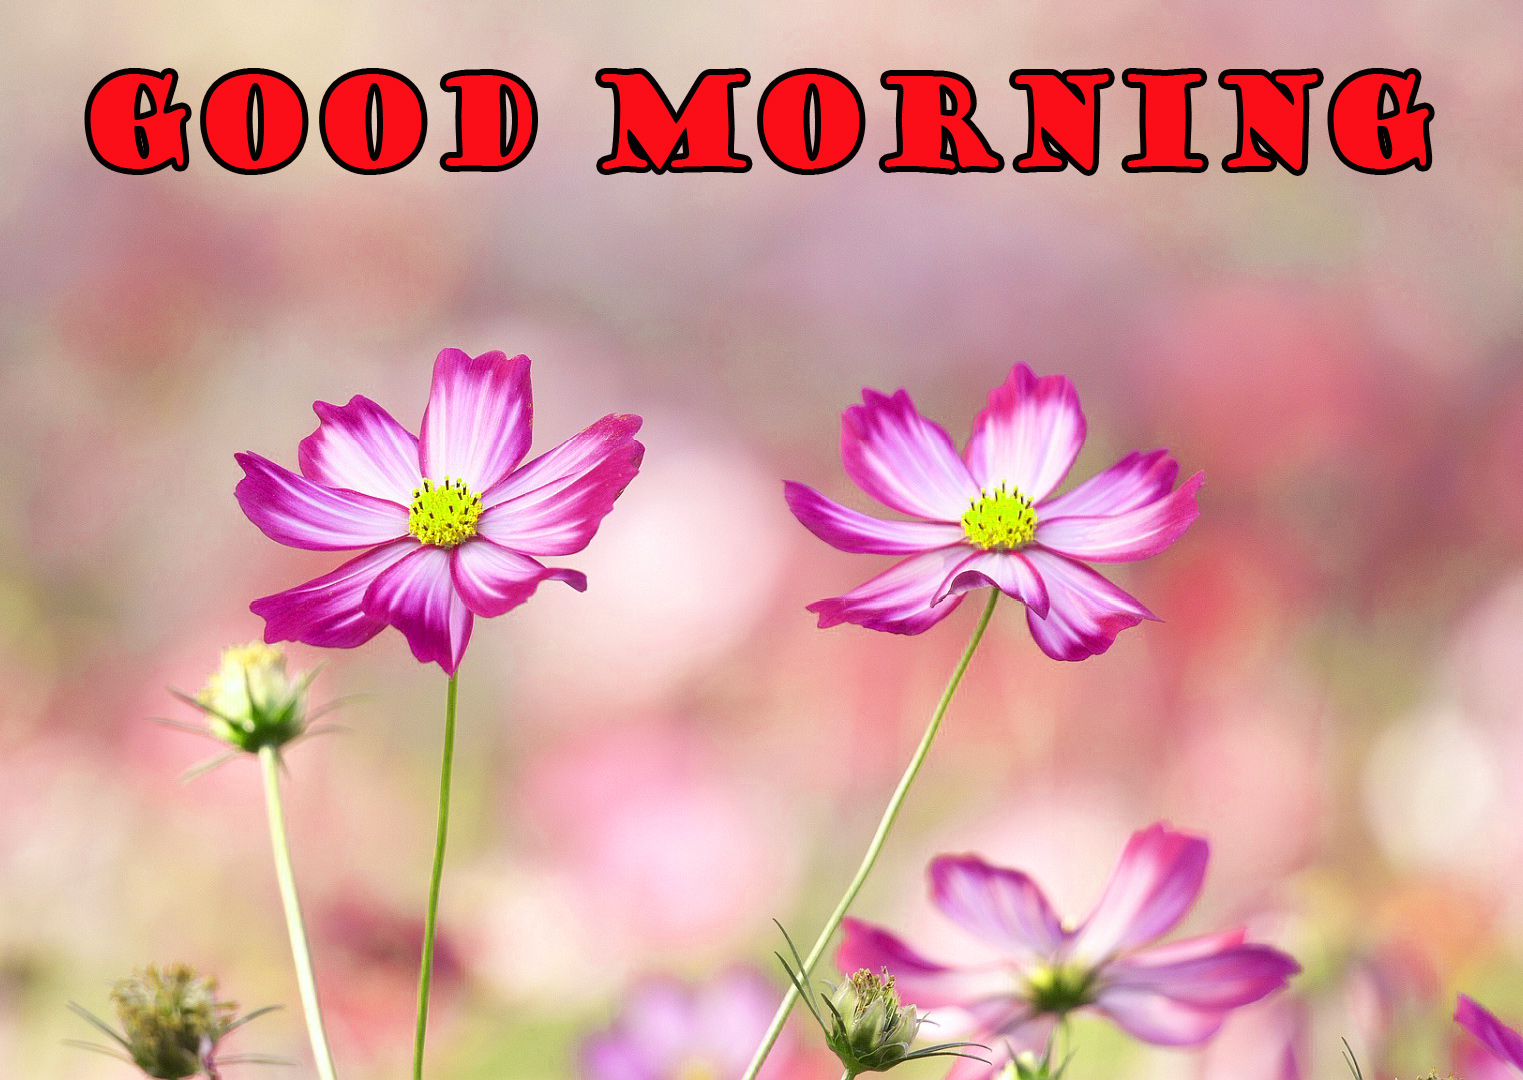 Good Morning Flowers Images Photo Wallpaper HD